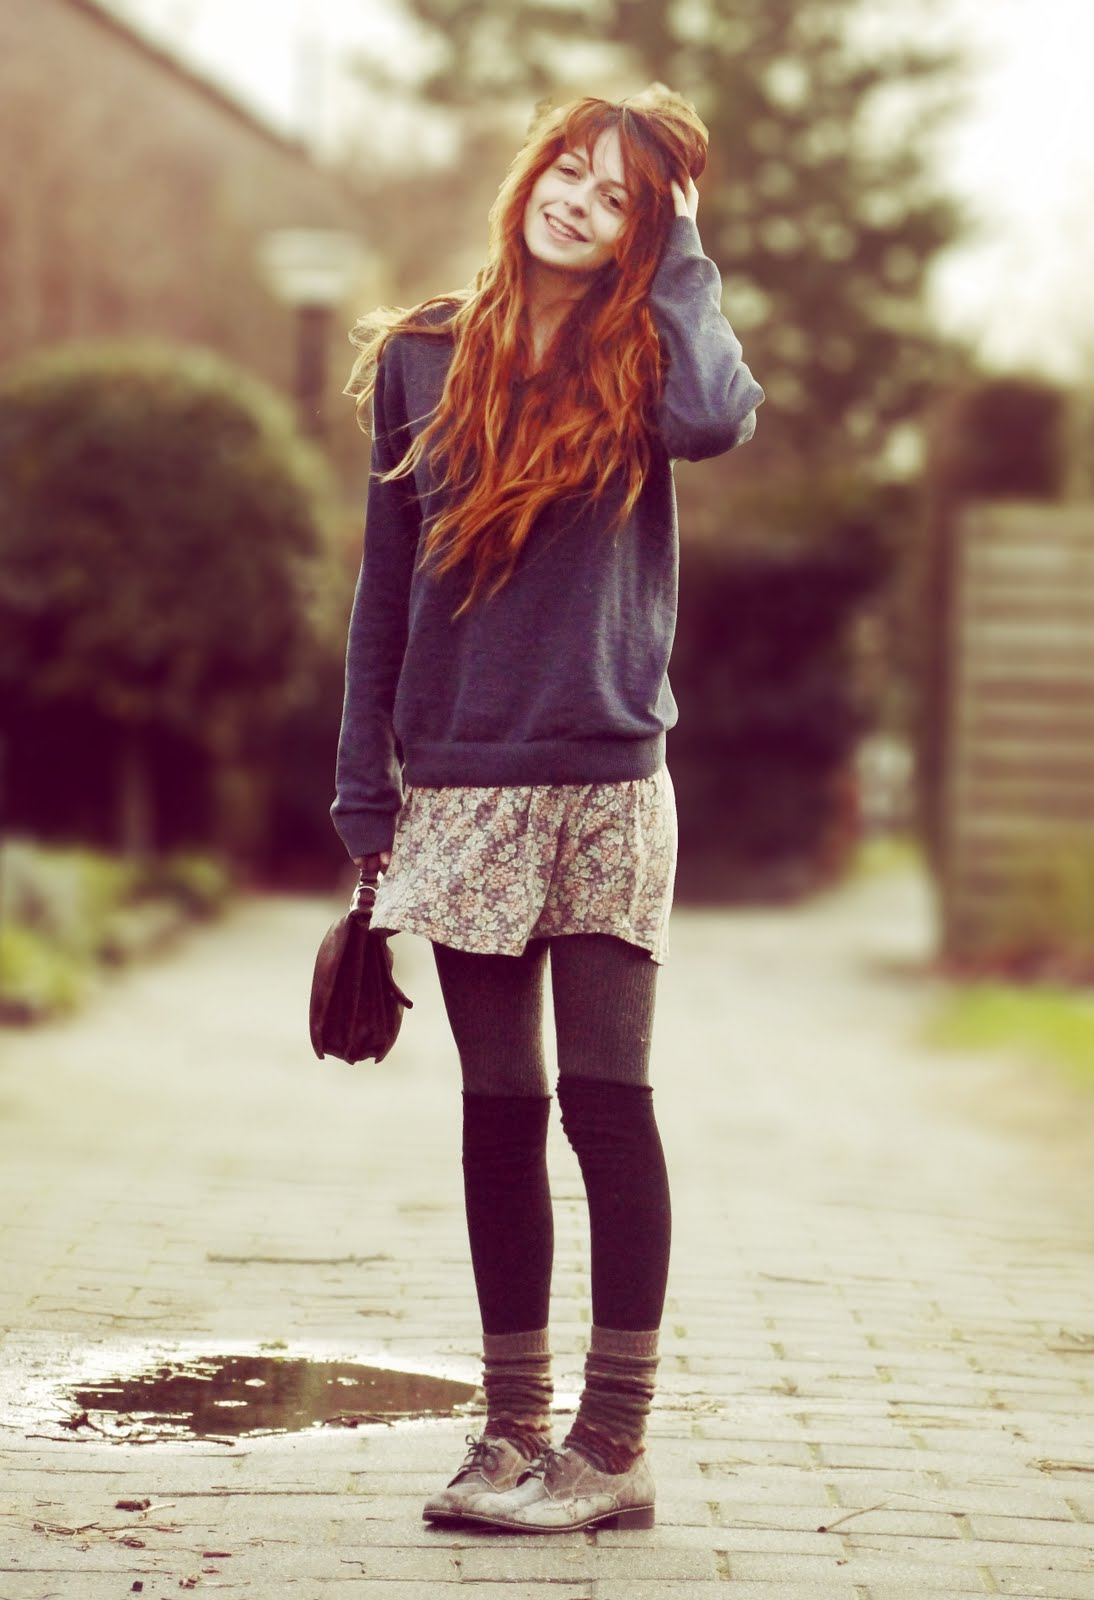 Image Blog Nadia S Cozy Outfits With Le Bunny Black Wanish Oxfords